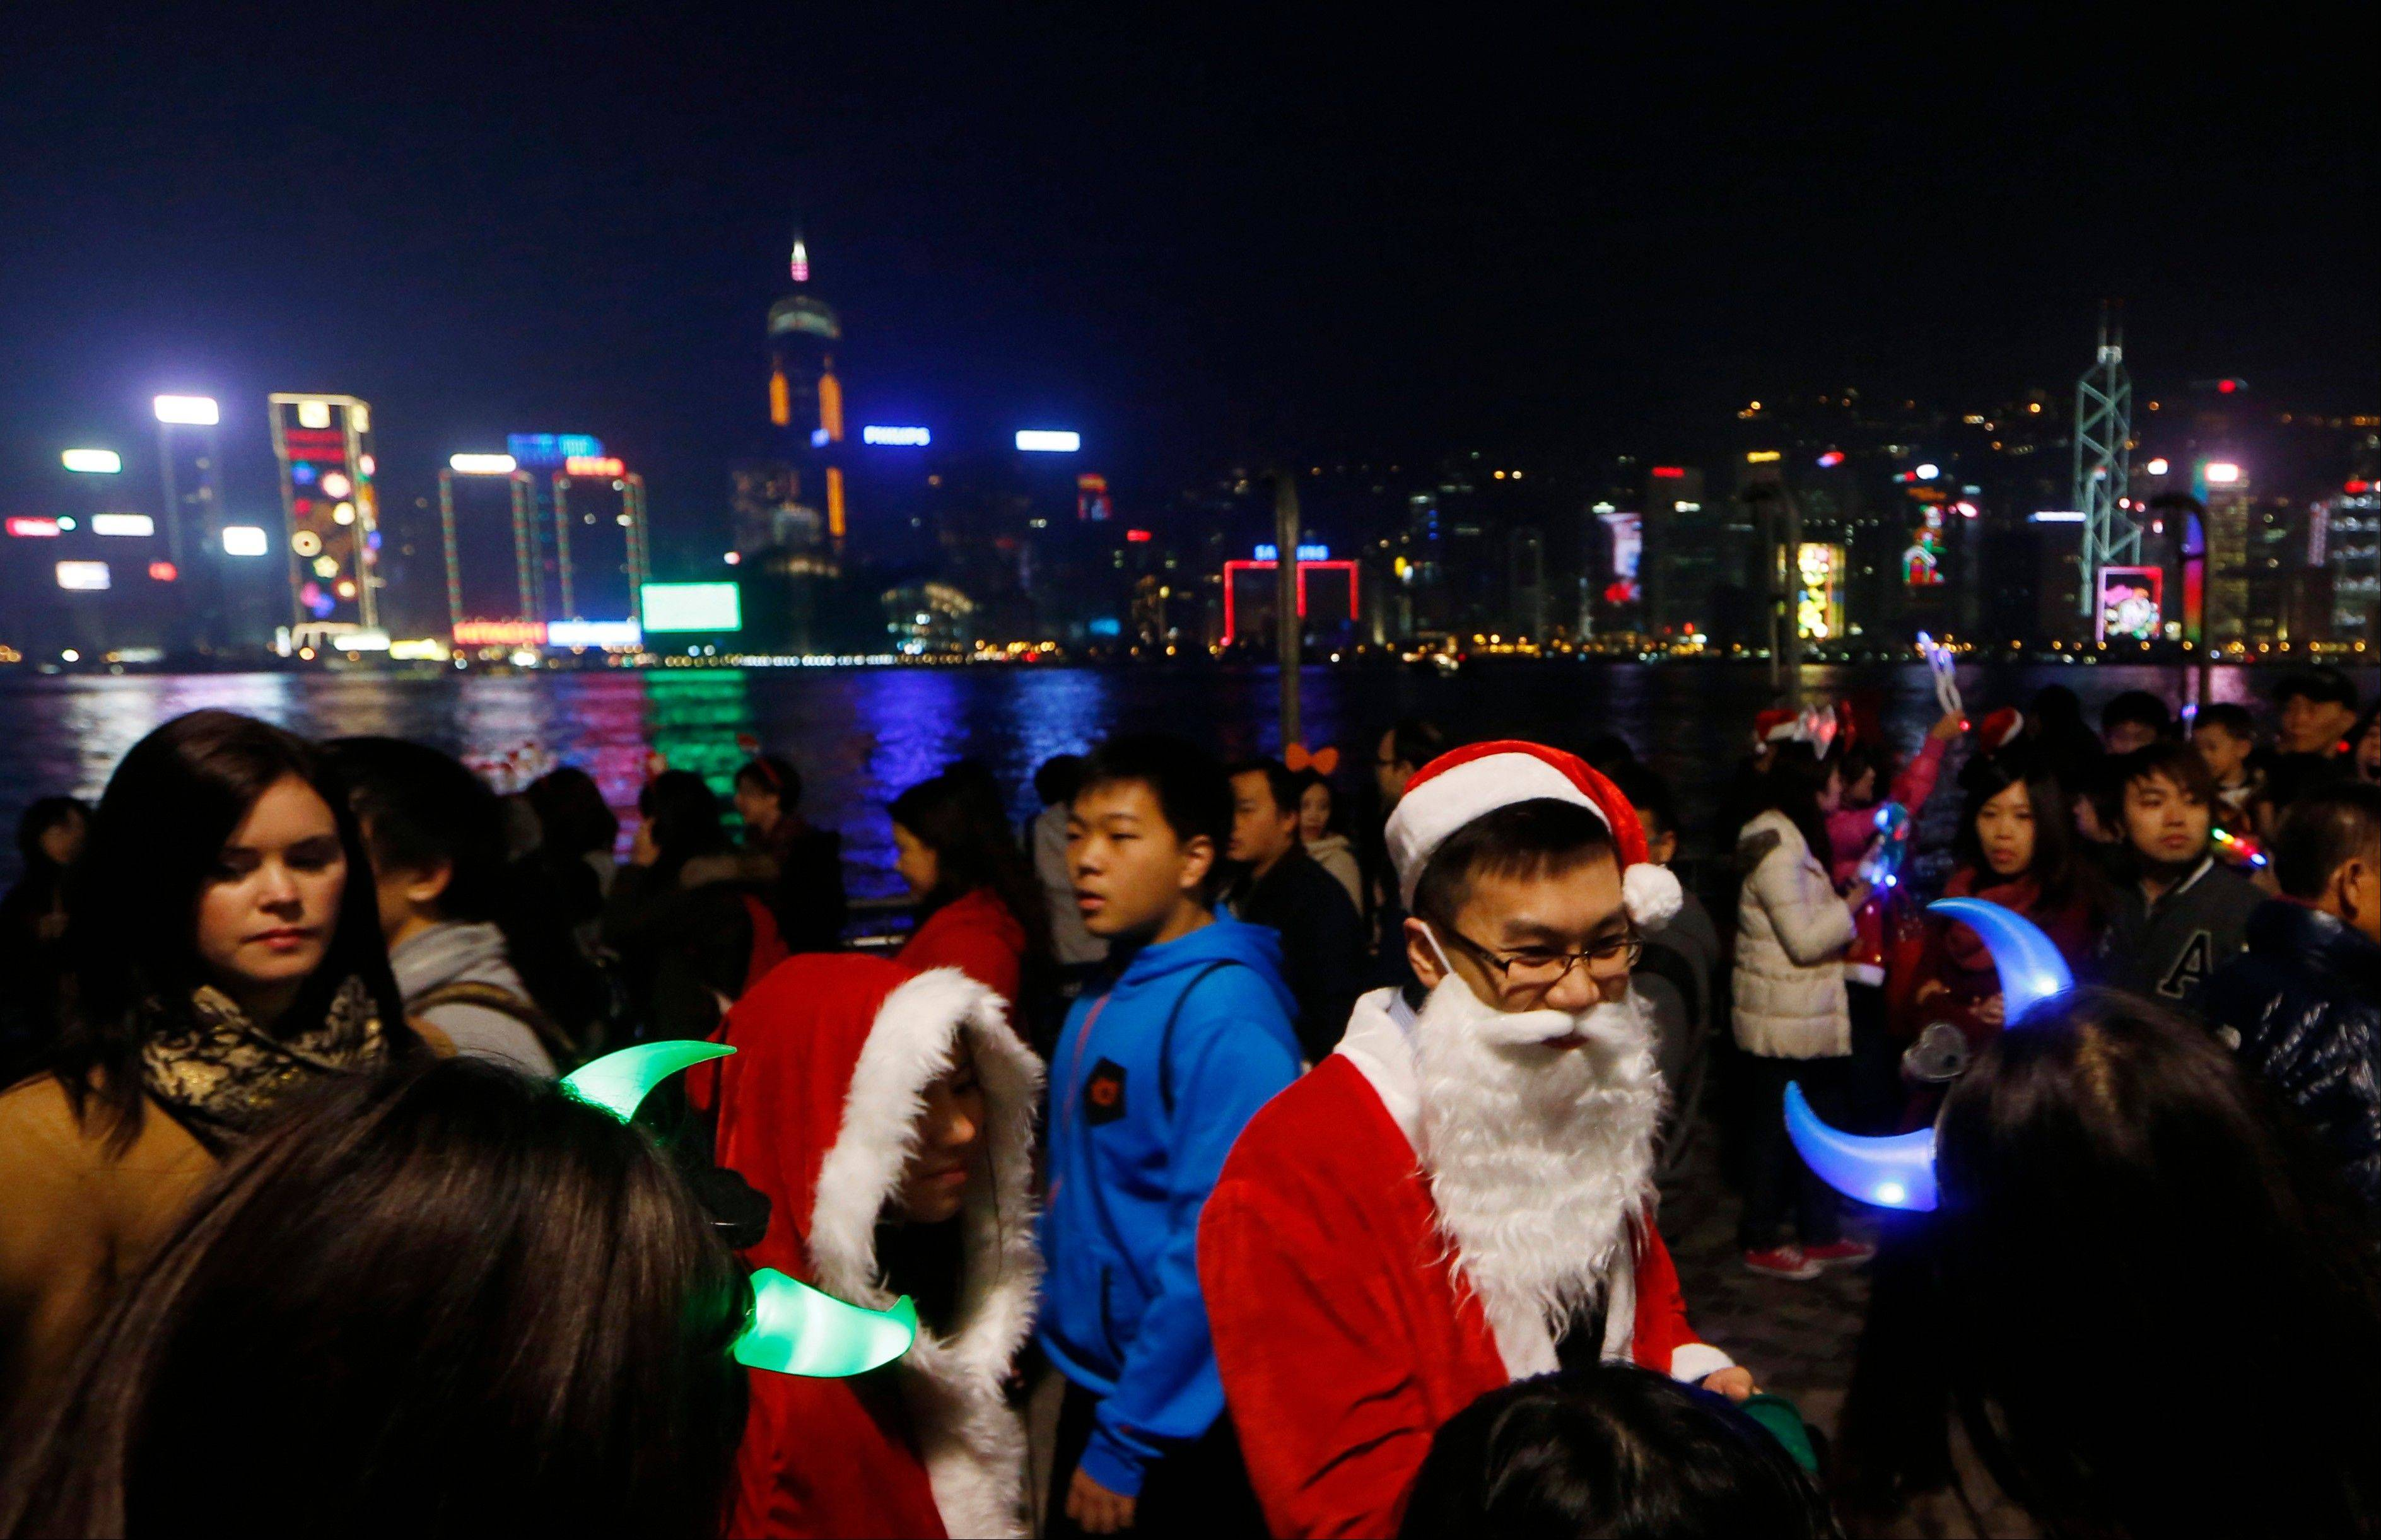 A couple dressed as Santa Claus deliver candies to visitors at the waterfront of Victoria Harbor in Hong Kong during Christmas eve as they are celebrating the festival season,Tuesday, Dec. 24, 2013.